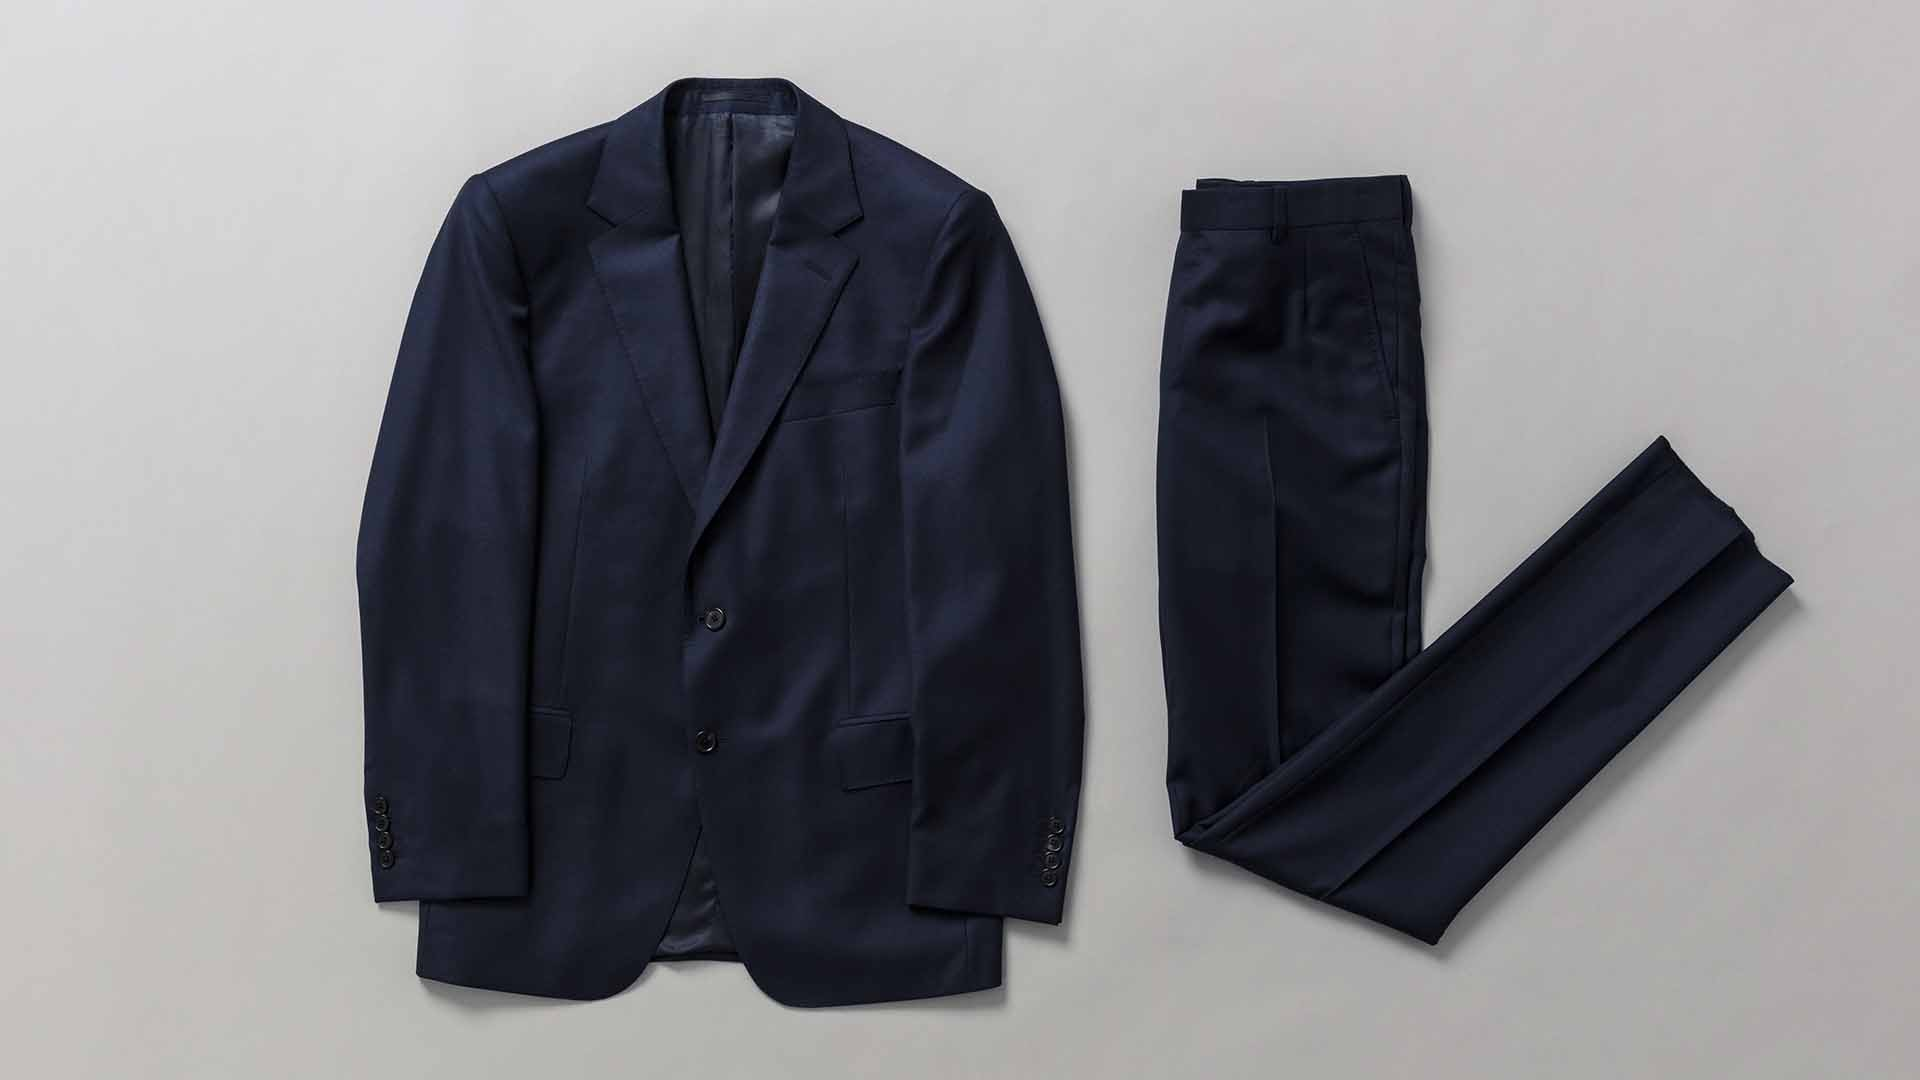 Gieves & Hawkes Made-to-measure suit